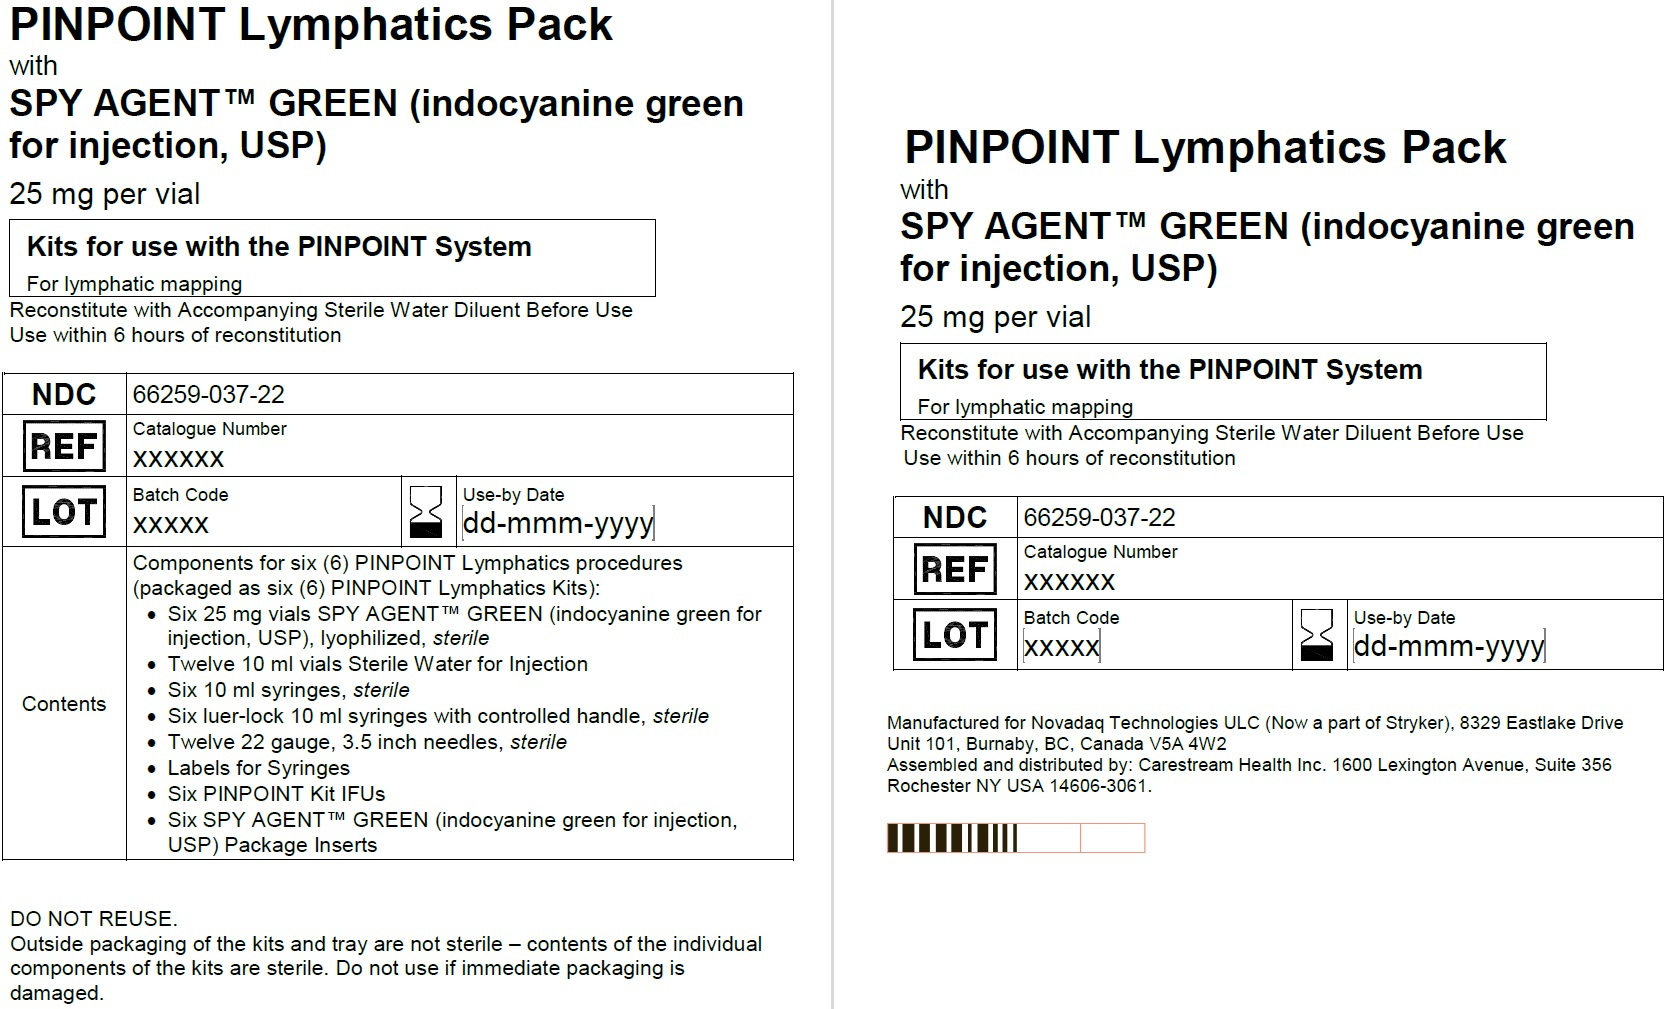 PINPOINT Lymphatics Pack Label